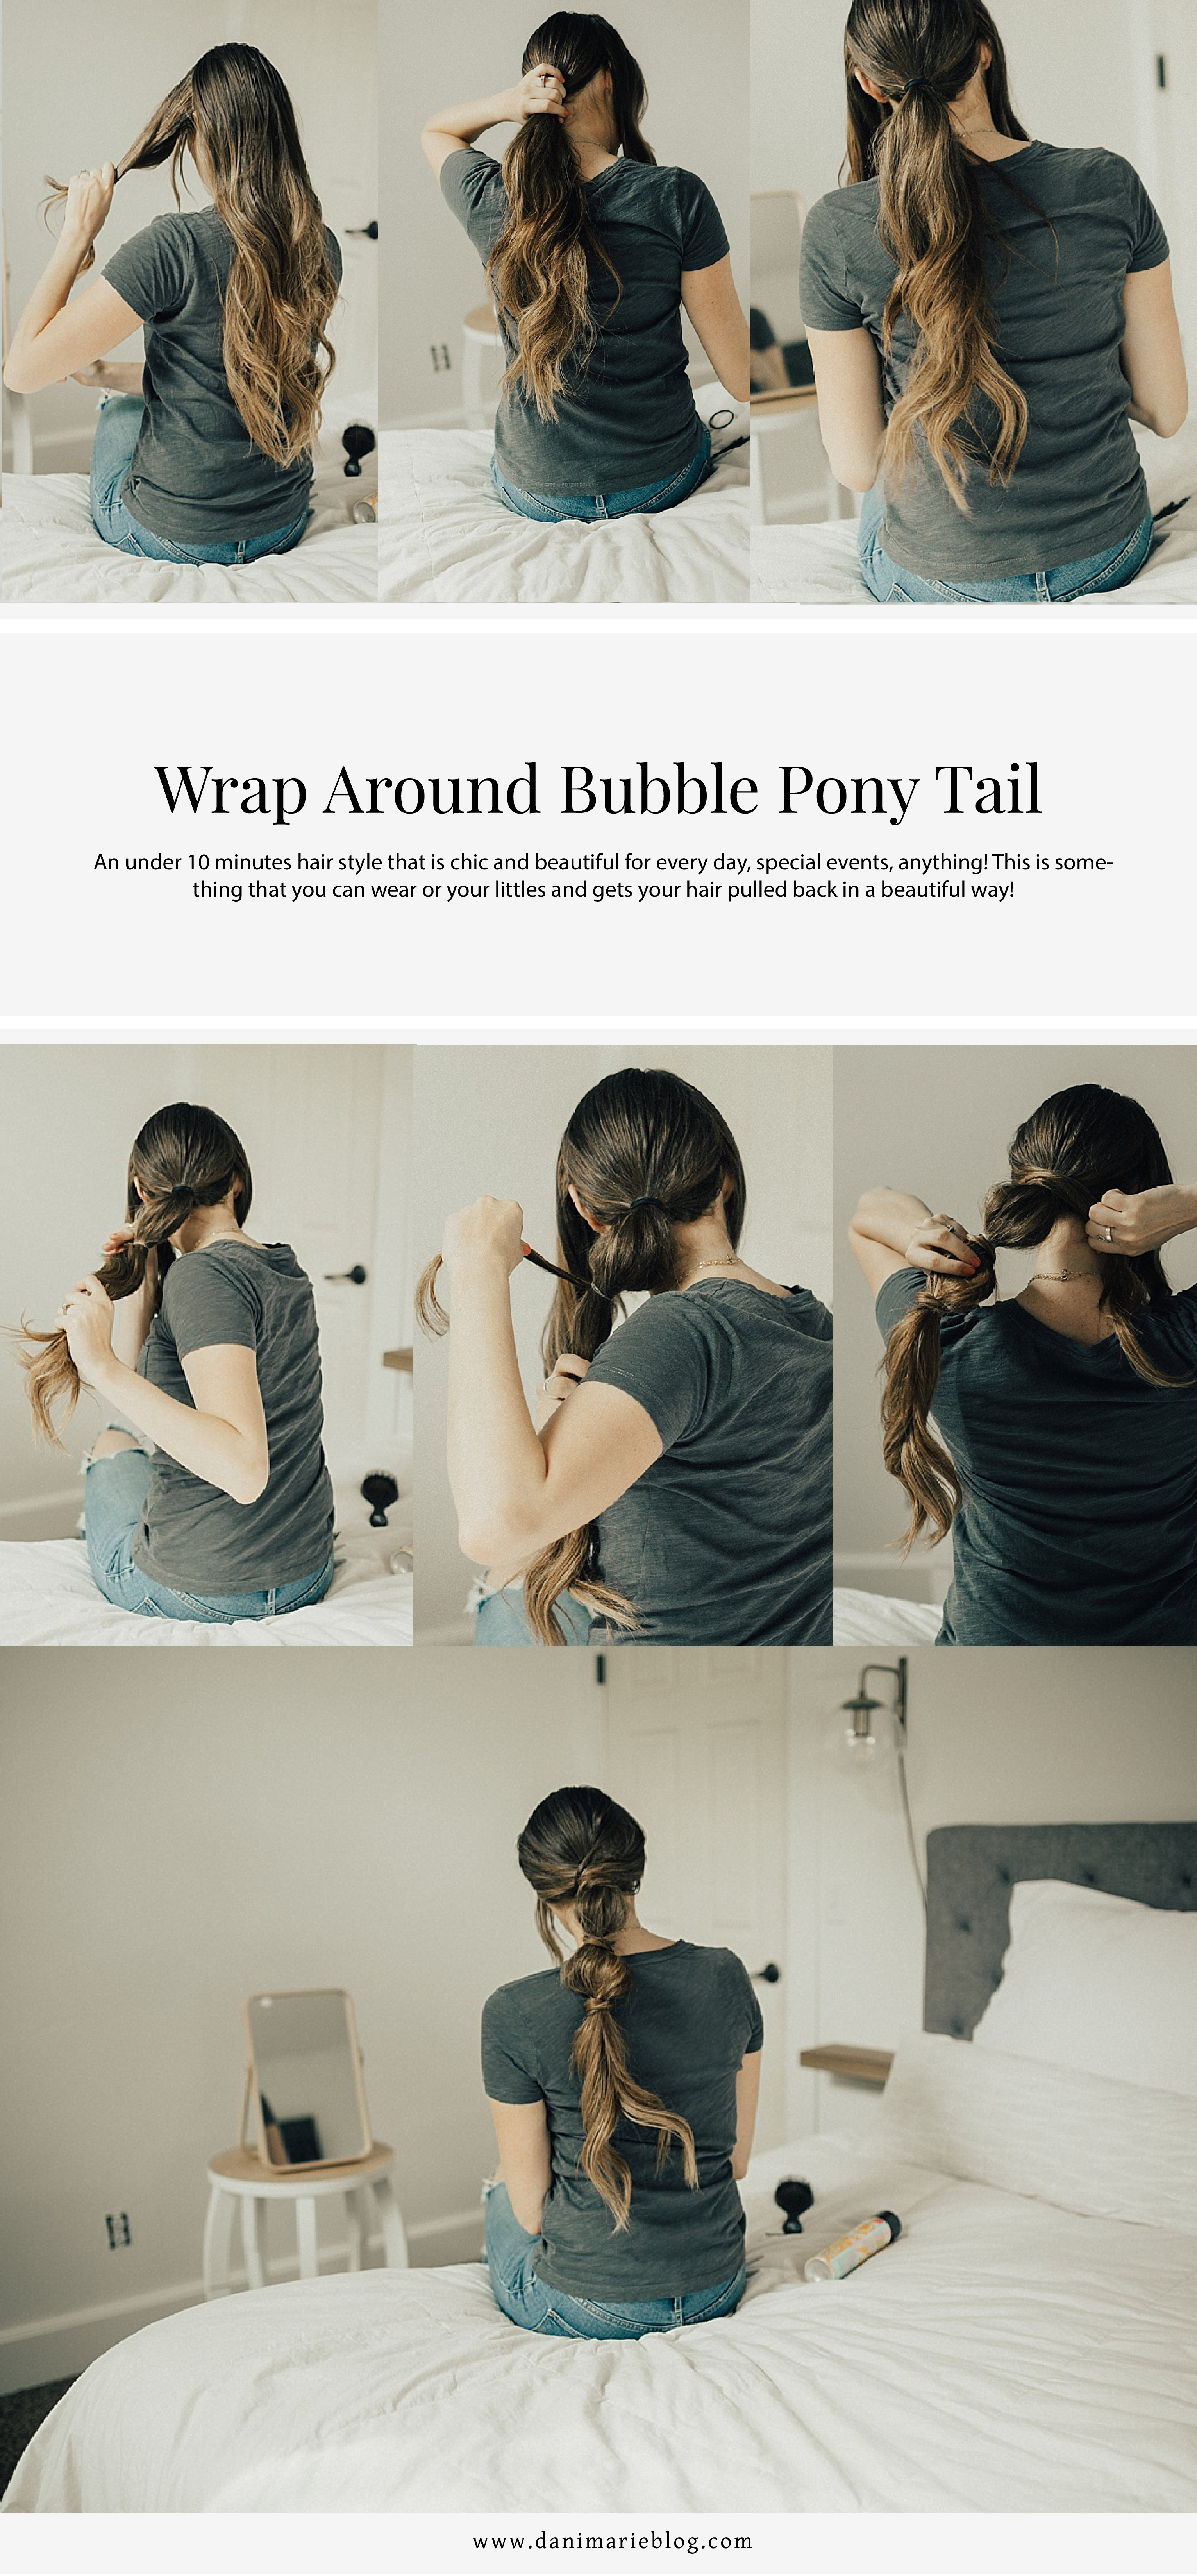 Easy Wrap Around Bubble Ponytail Tutorial by Utah style blogger Dani Marie